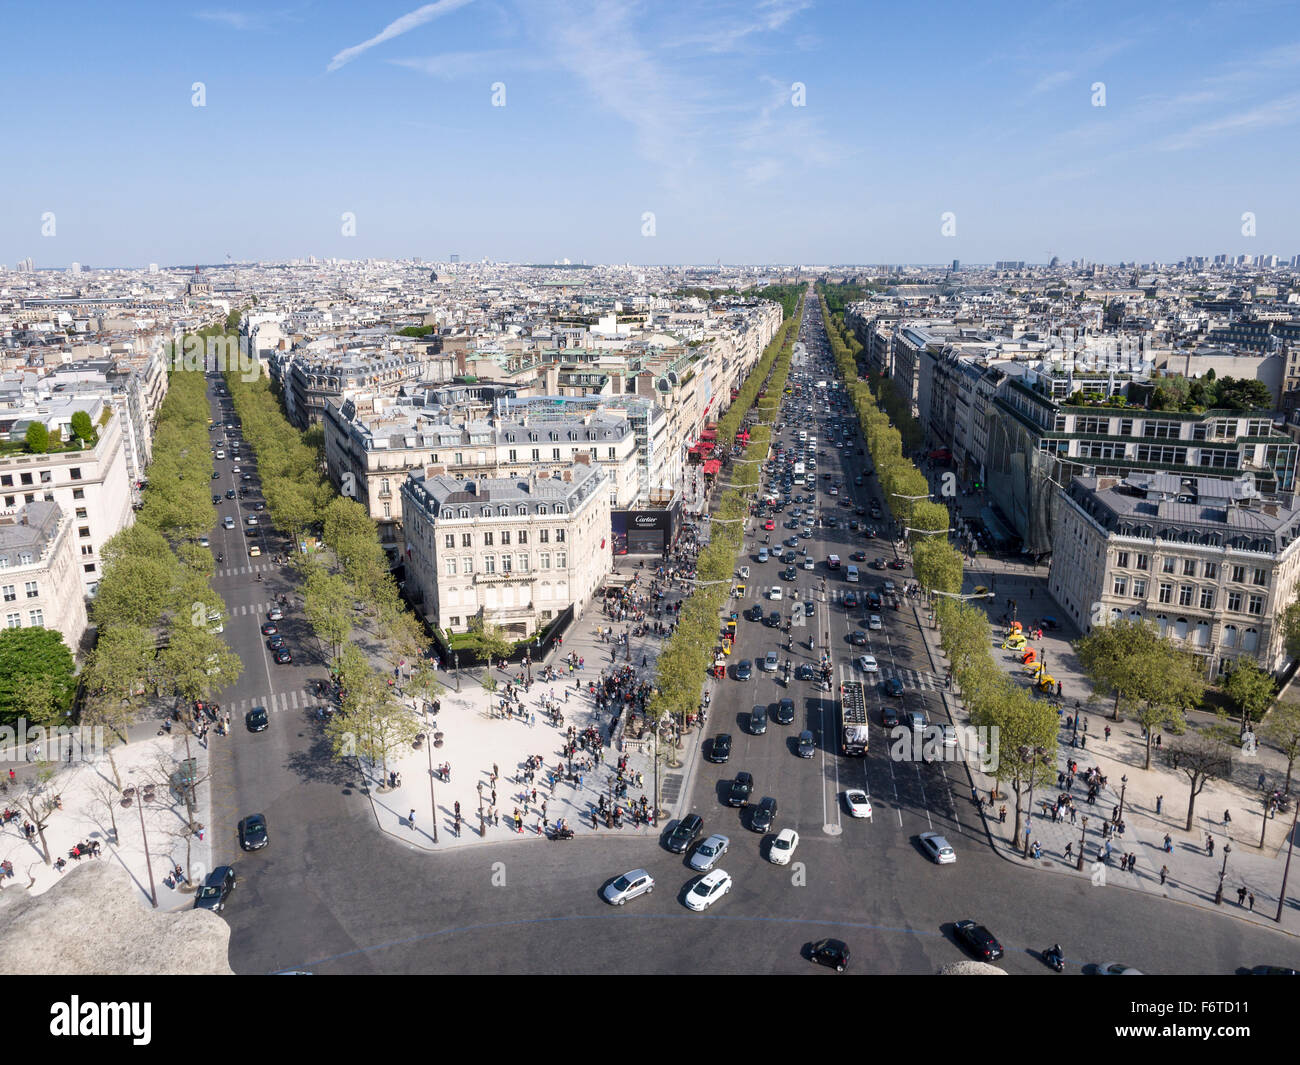 Avenue des Champs-Elysees & Friedland. The Champs-Elysses and Avenue de Friedland from the Arc de Triomphe - Stock Image